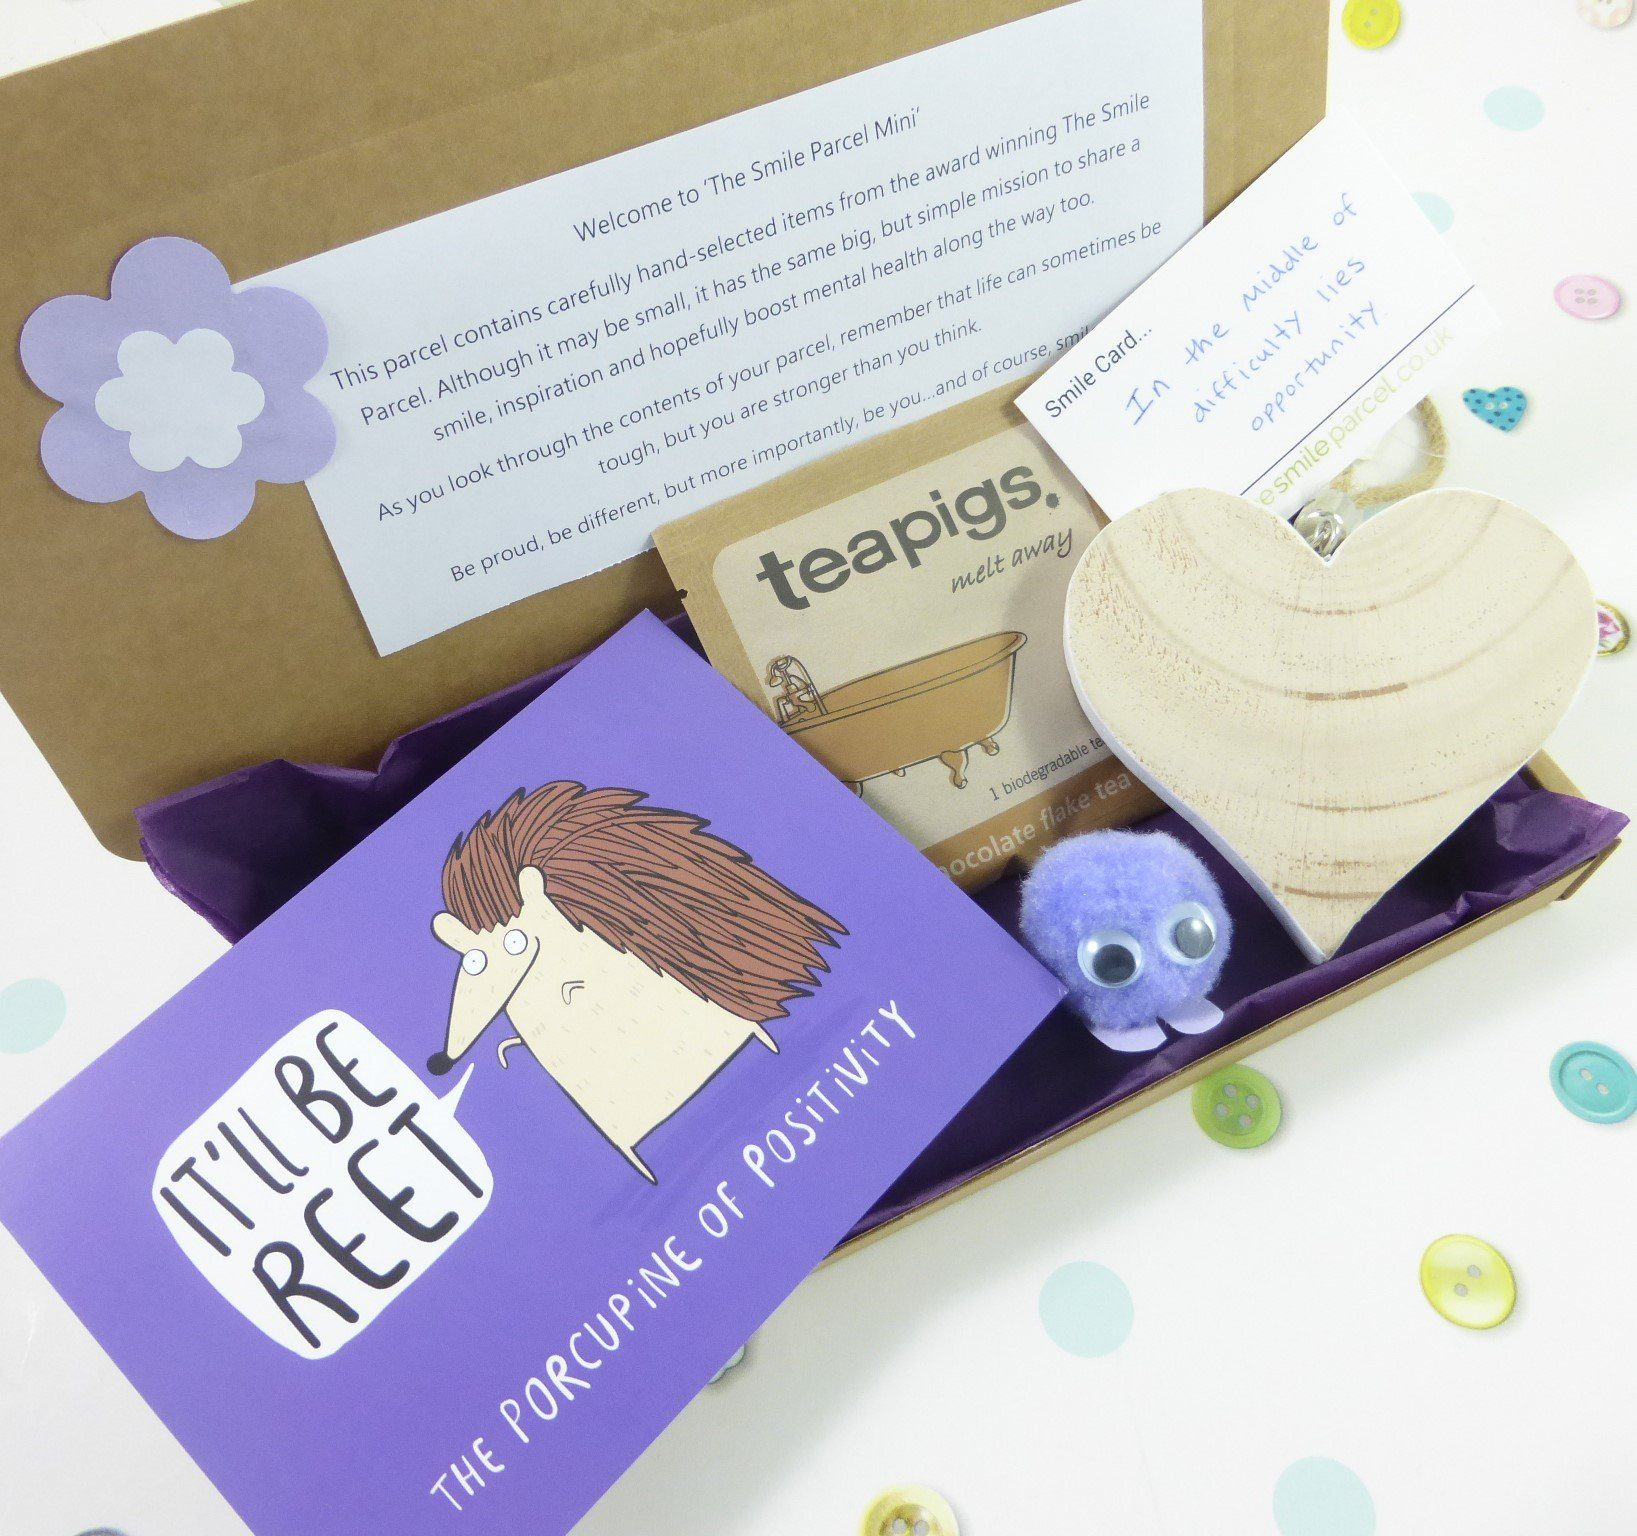 Purple Letterbox Friendly, Pick Me Up Gift, The Smile Parcel Mini, Happy Mail, Mental Health Box, Self Care Gift Box Kind Shop